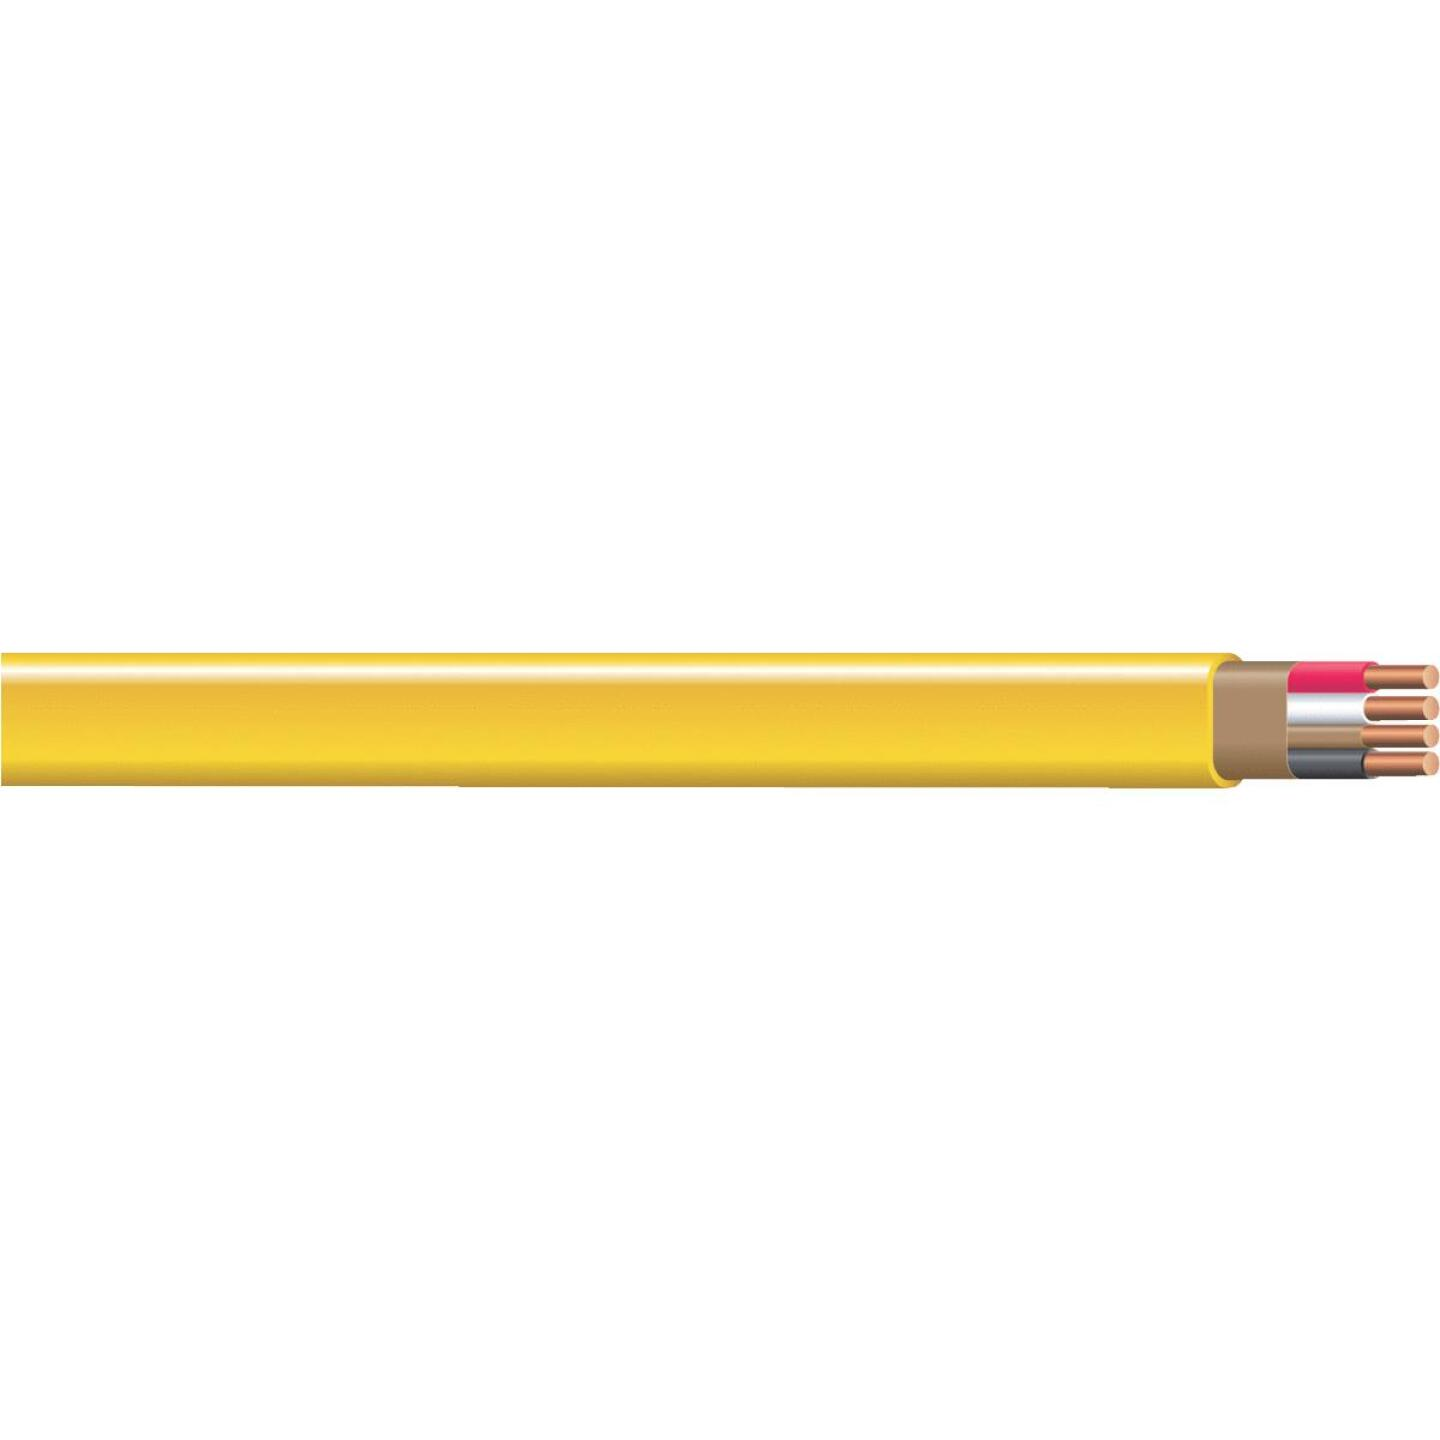 Romex 25 Ft. 12-3 Solid Yellow NMW/G Wire Image 1